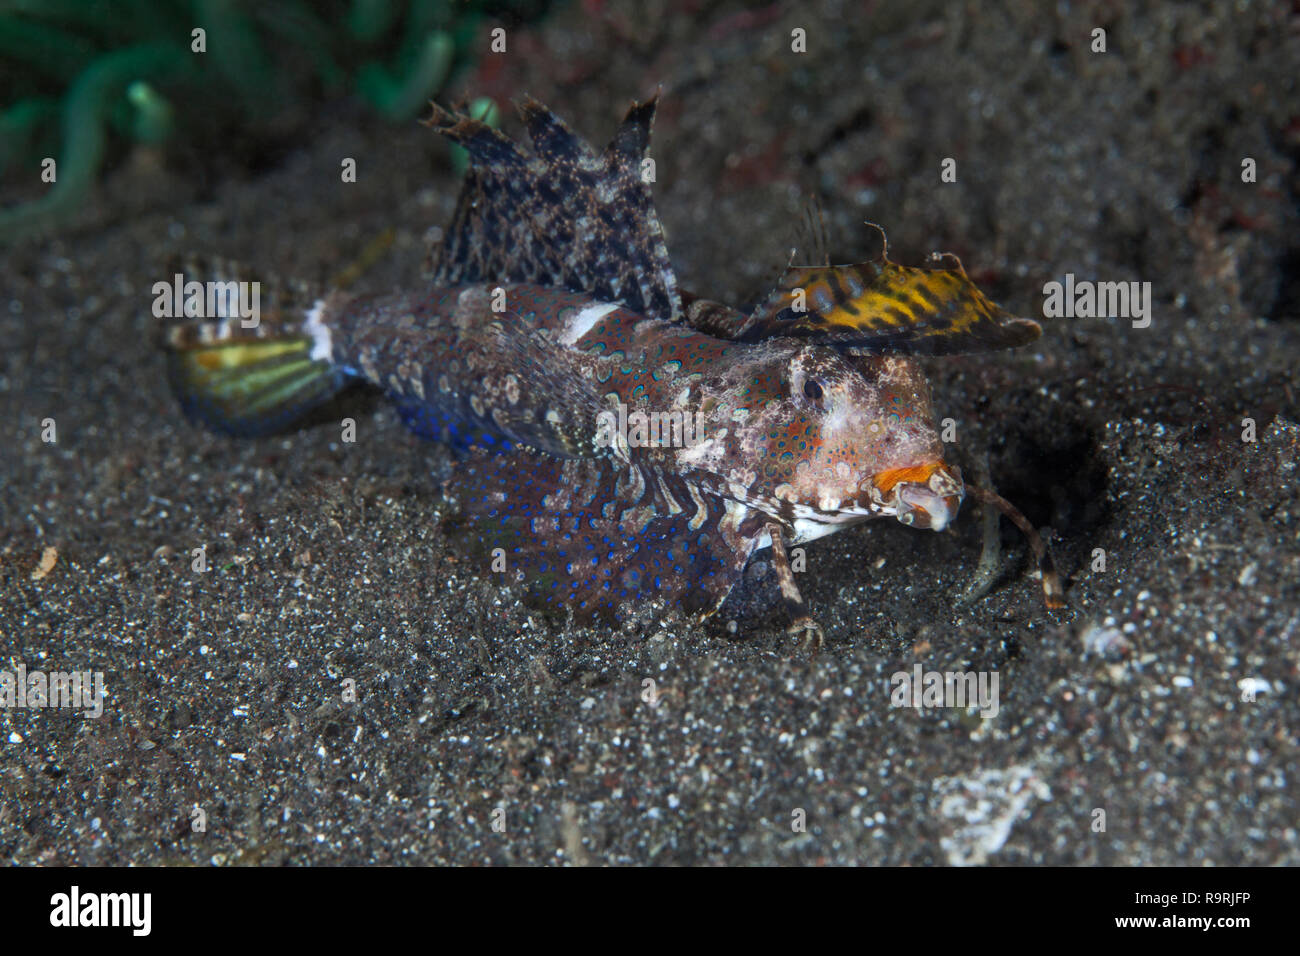 Fingered dragonet (dactylopus dactylopus) feeding on the sea floor in Lembeh Straits, Indonesia. Stock Photo